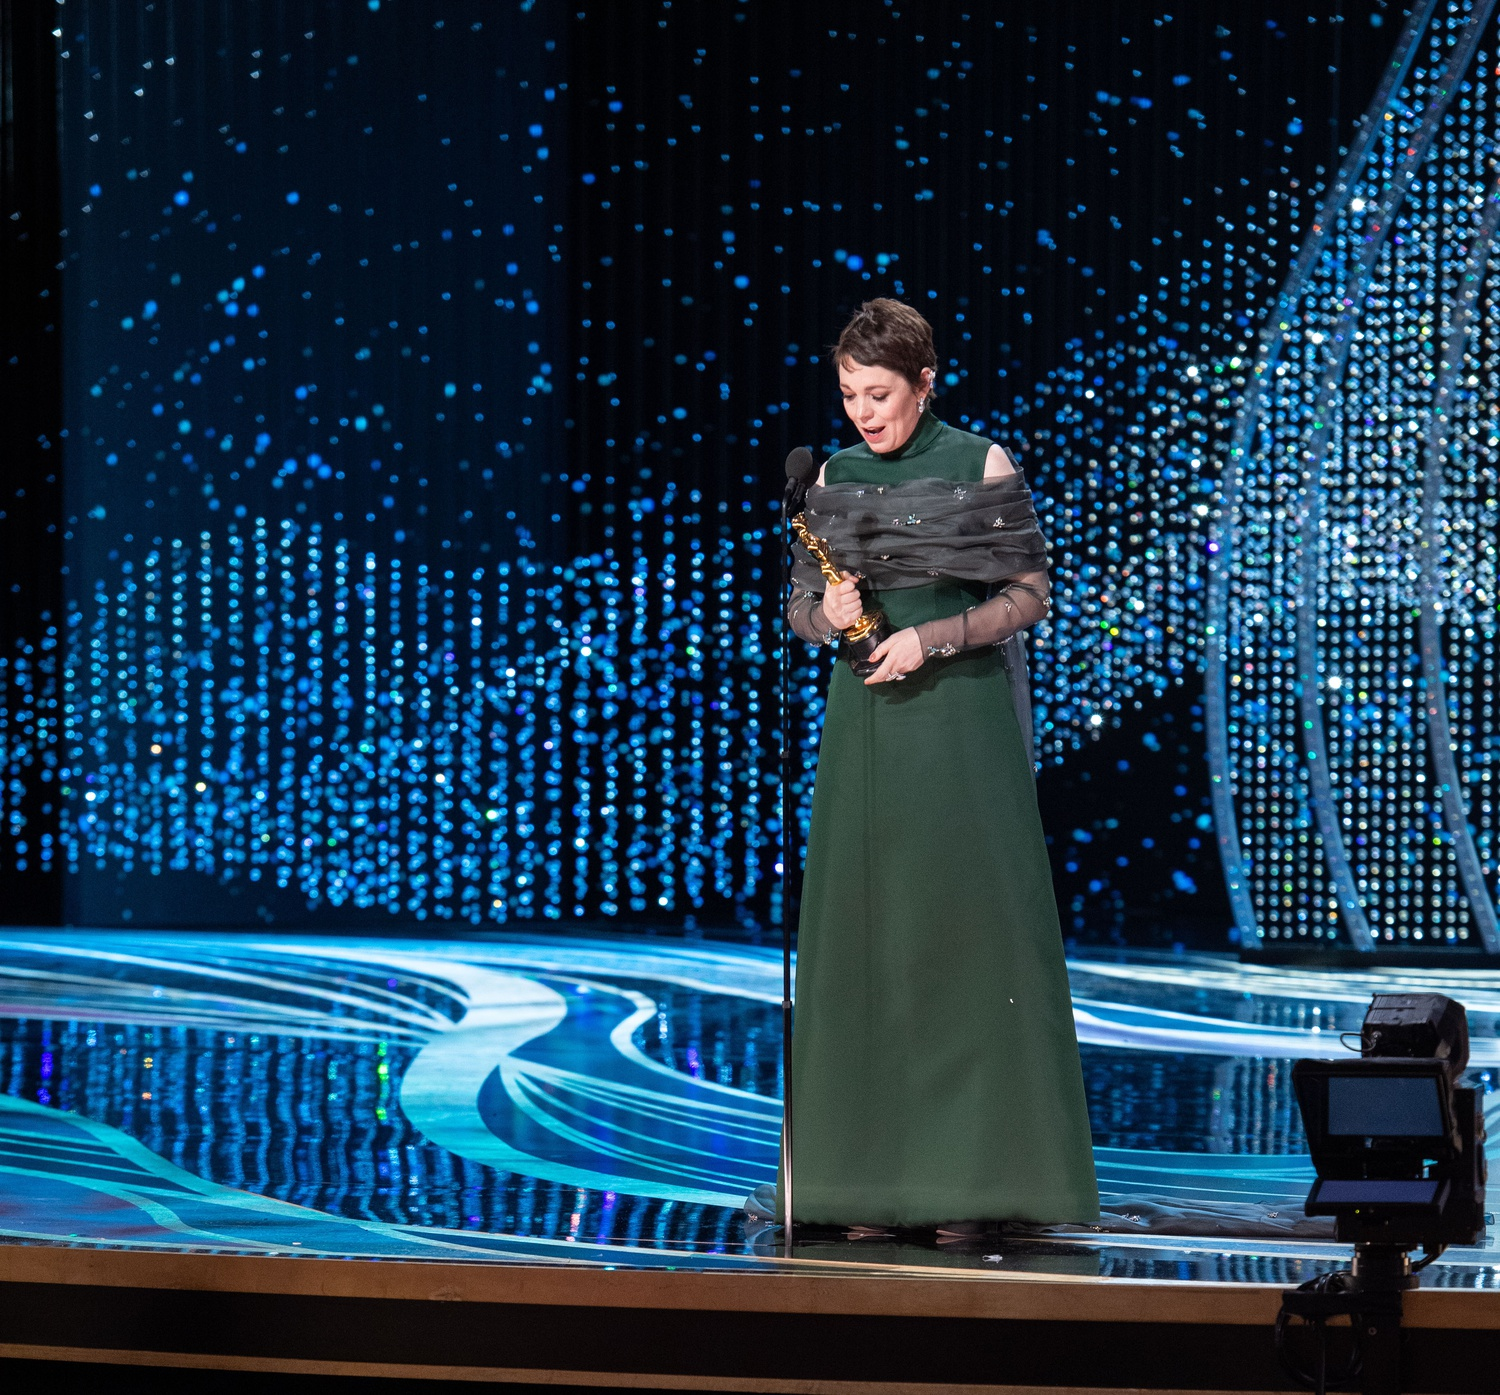 Olivia Colman accepts the Oscar® for performance by an actress in a leading role during the live ABC Telecast of the 91st Oscars®.